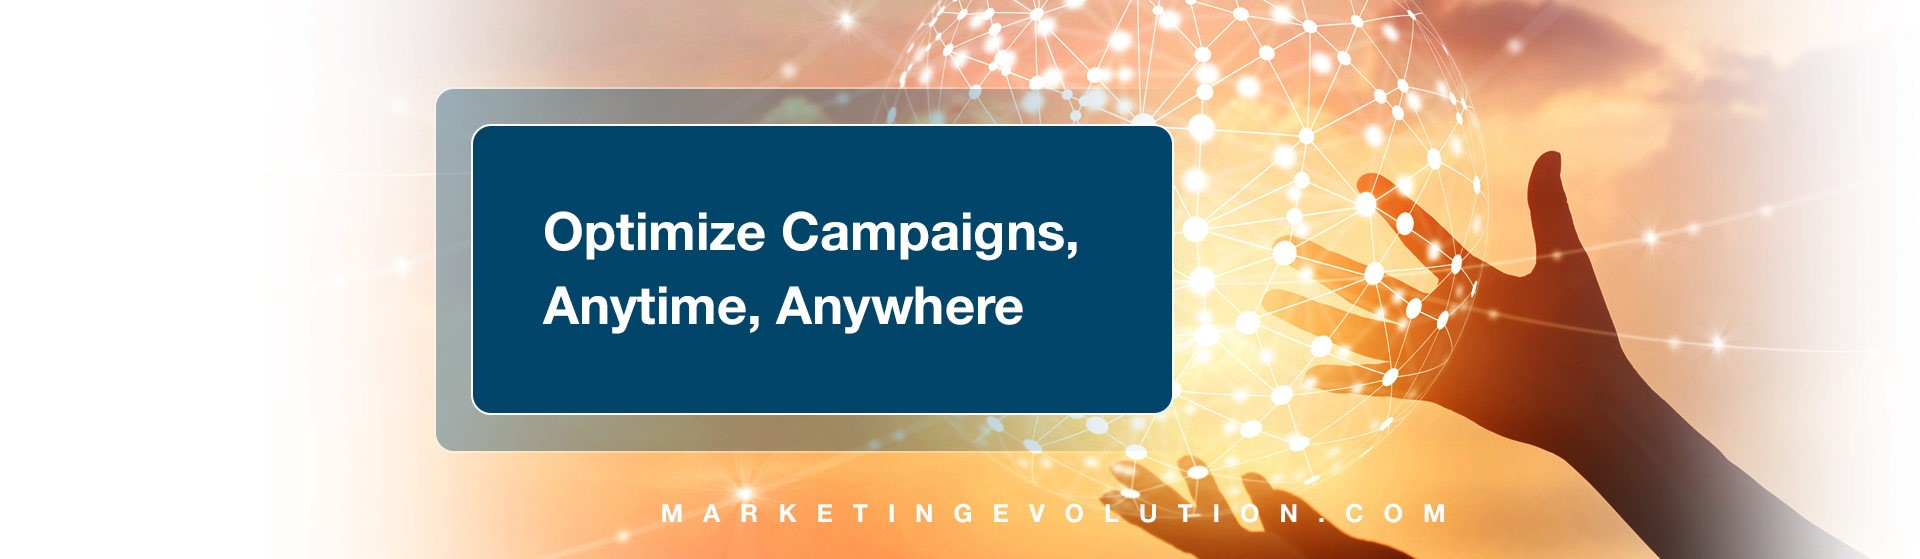 optimize campaigns in real-time.jpg